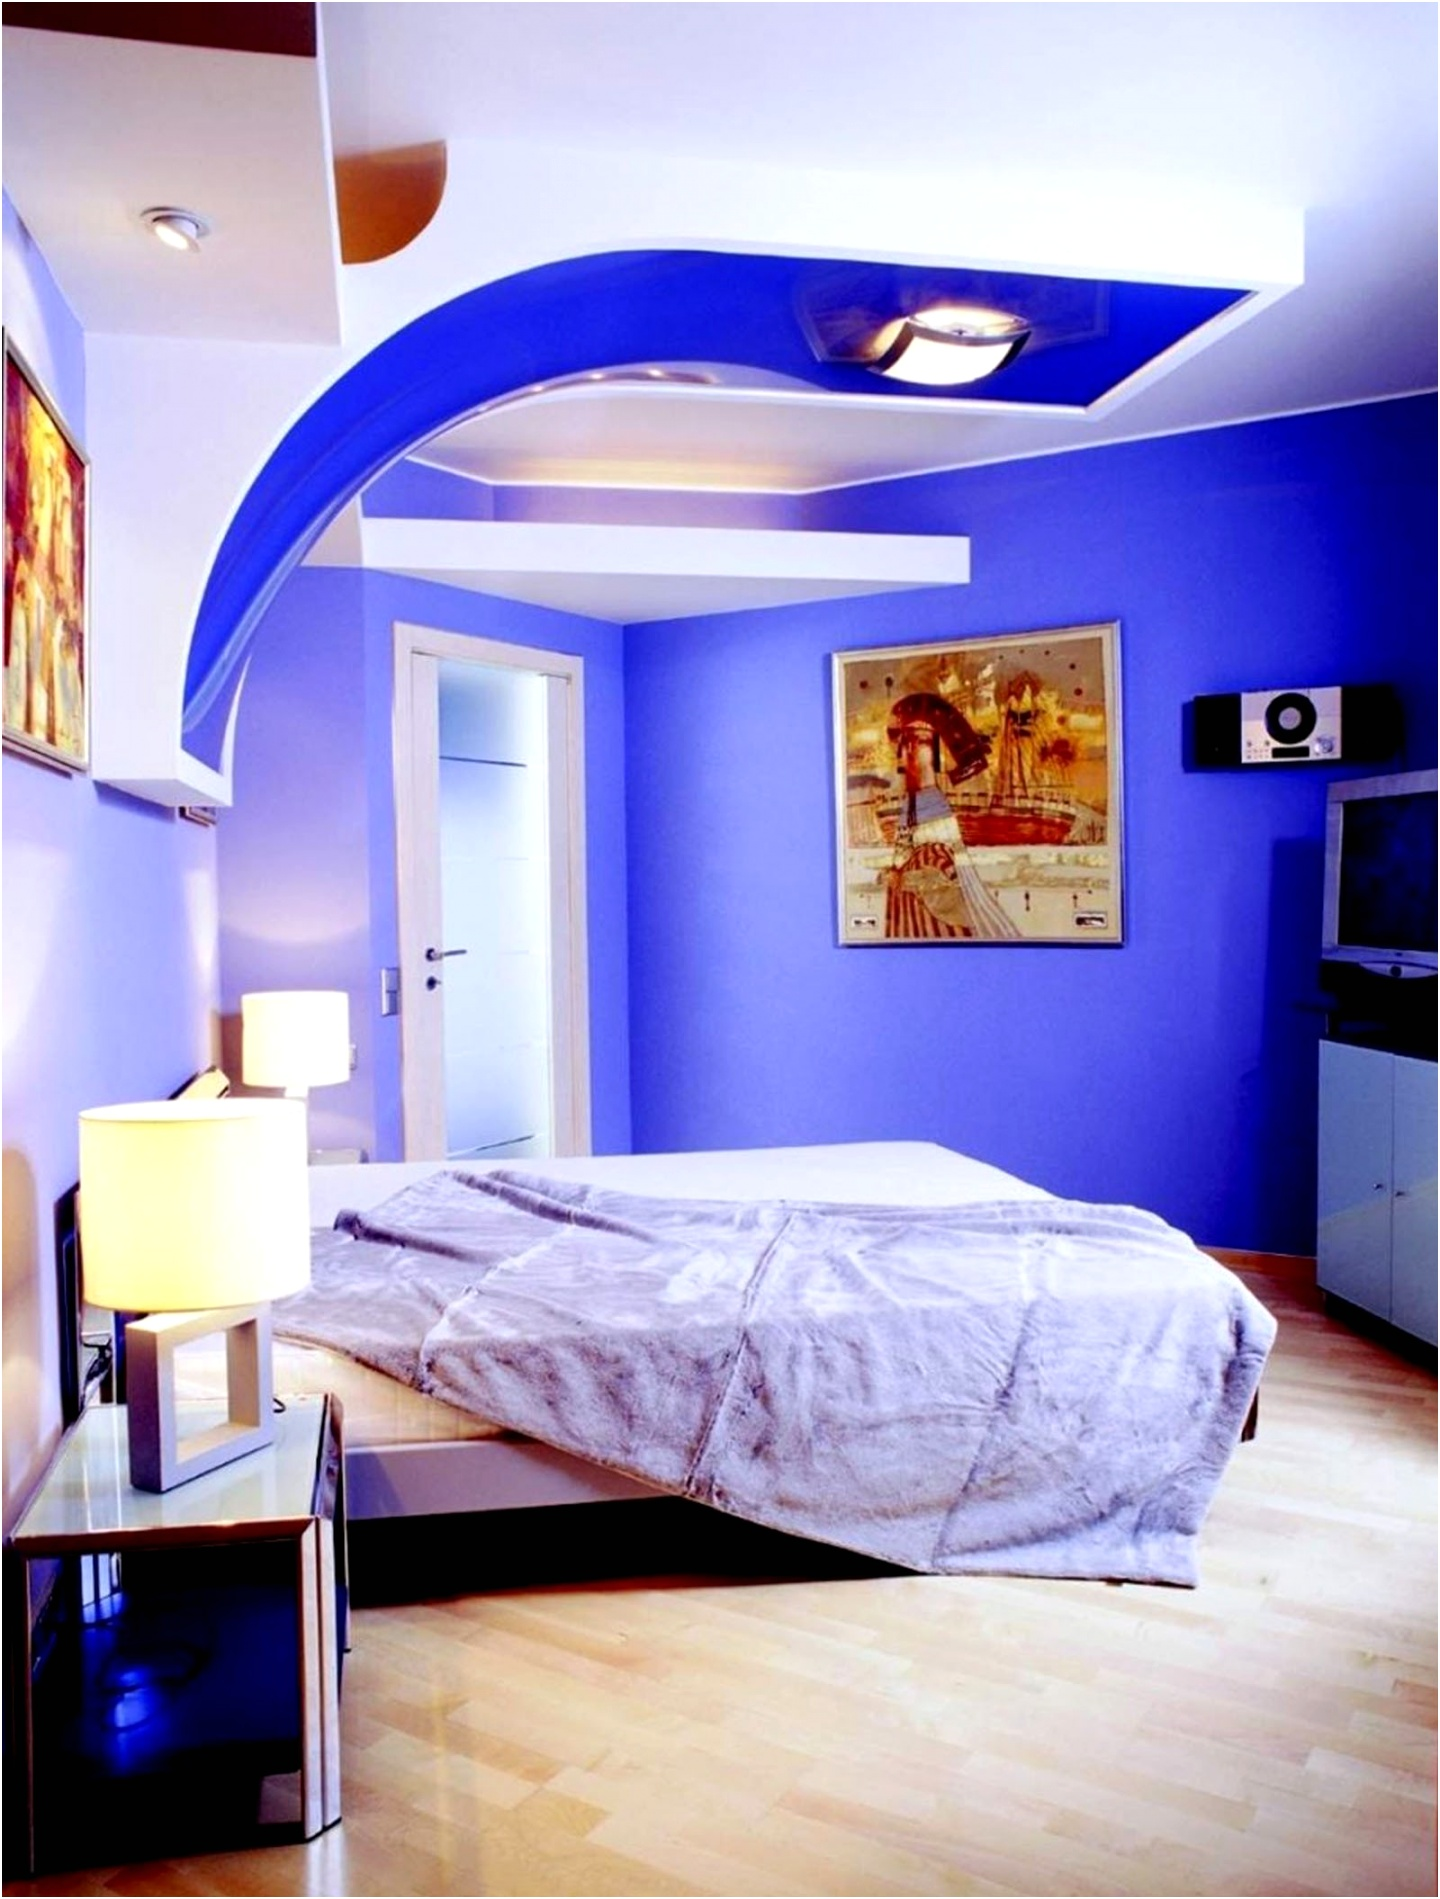 paint color ideas for bedroom walls 45 beautiful paint color ideas for master bedroom